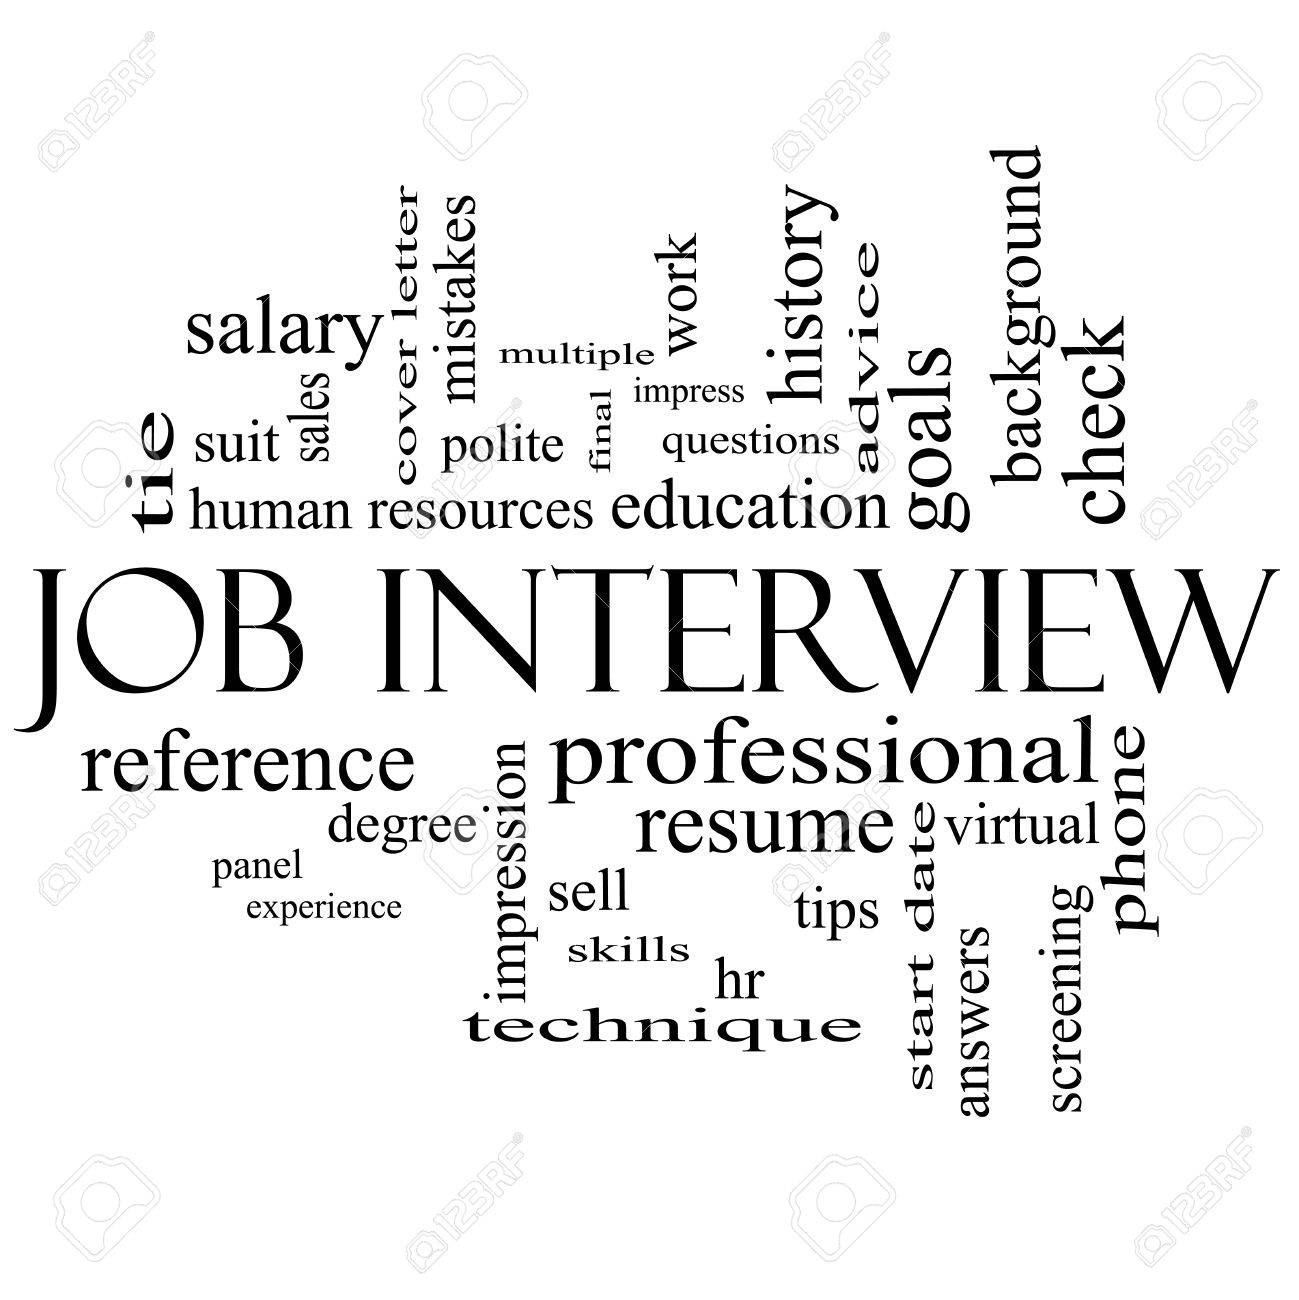 job interview word cloud concept in black and white with great terms such as suit